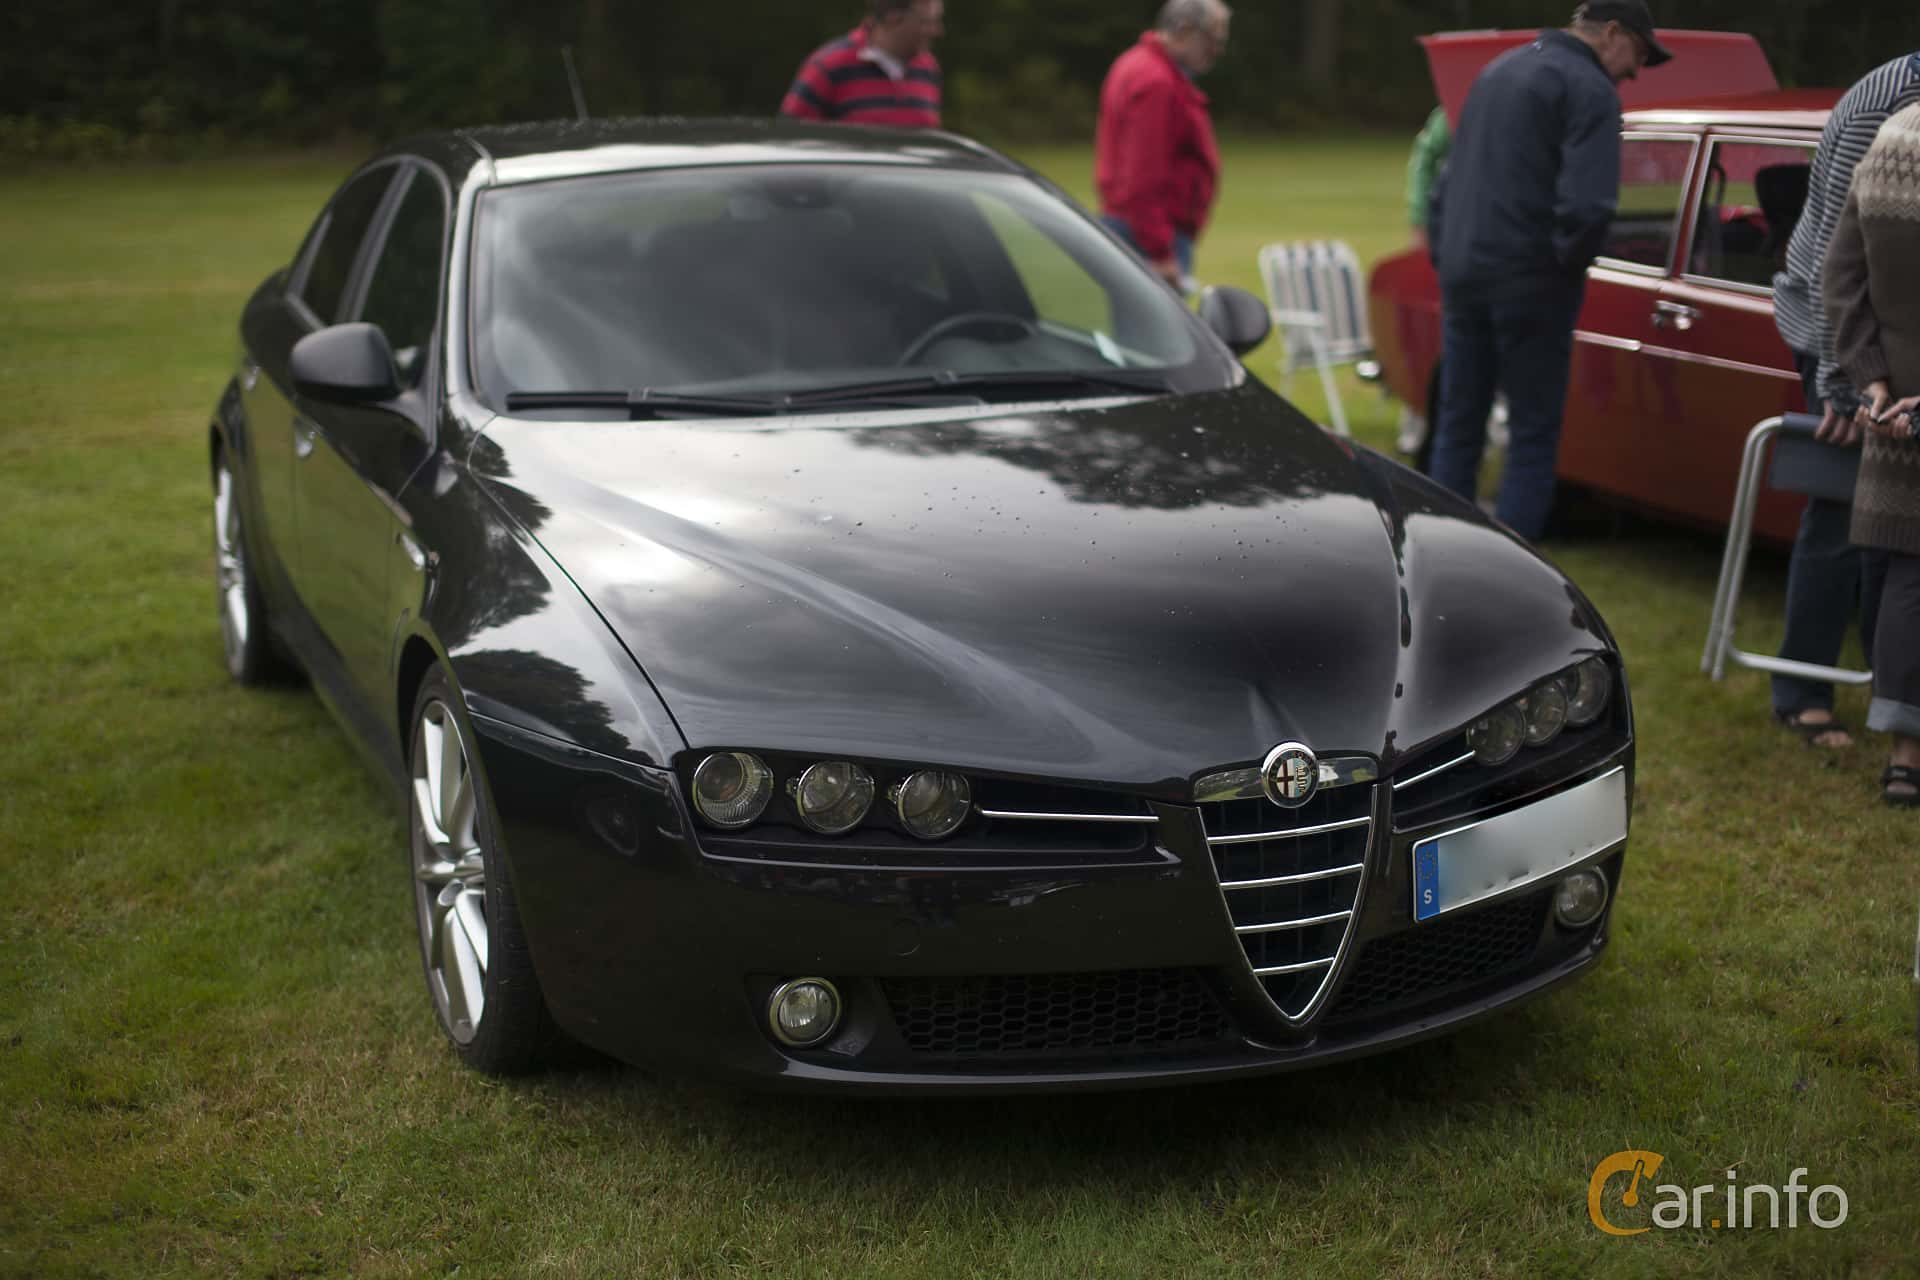 alfa romeo 159 generation 939 facelift 2 4 jtdm 20v manual 6 speed rh car info alfa romeo 159 manual cz alfa romeo 159 manual